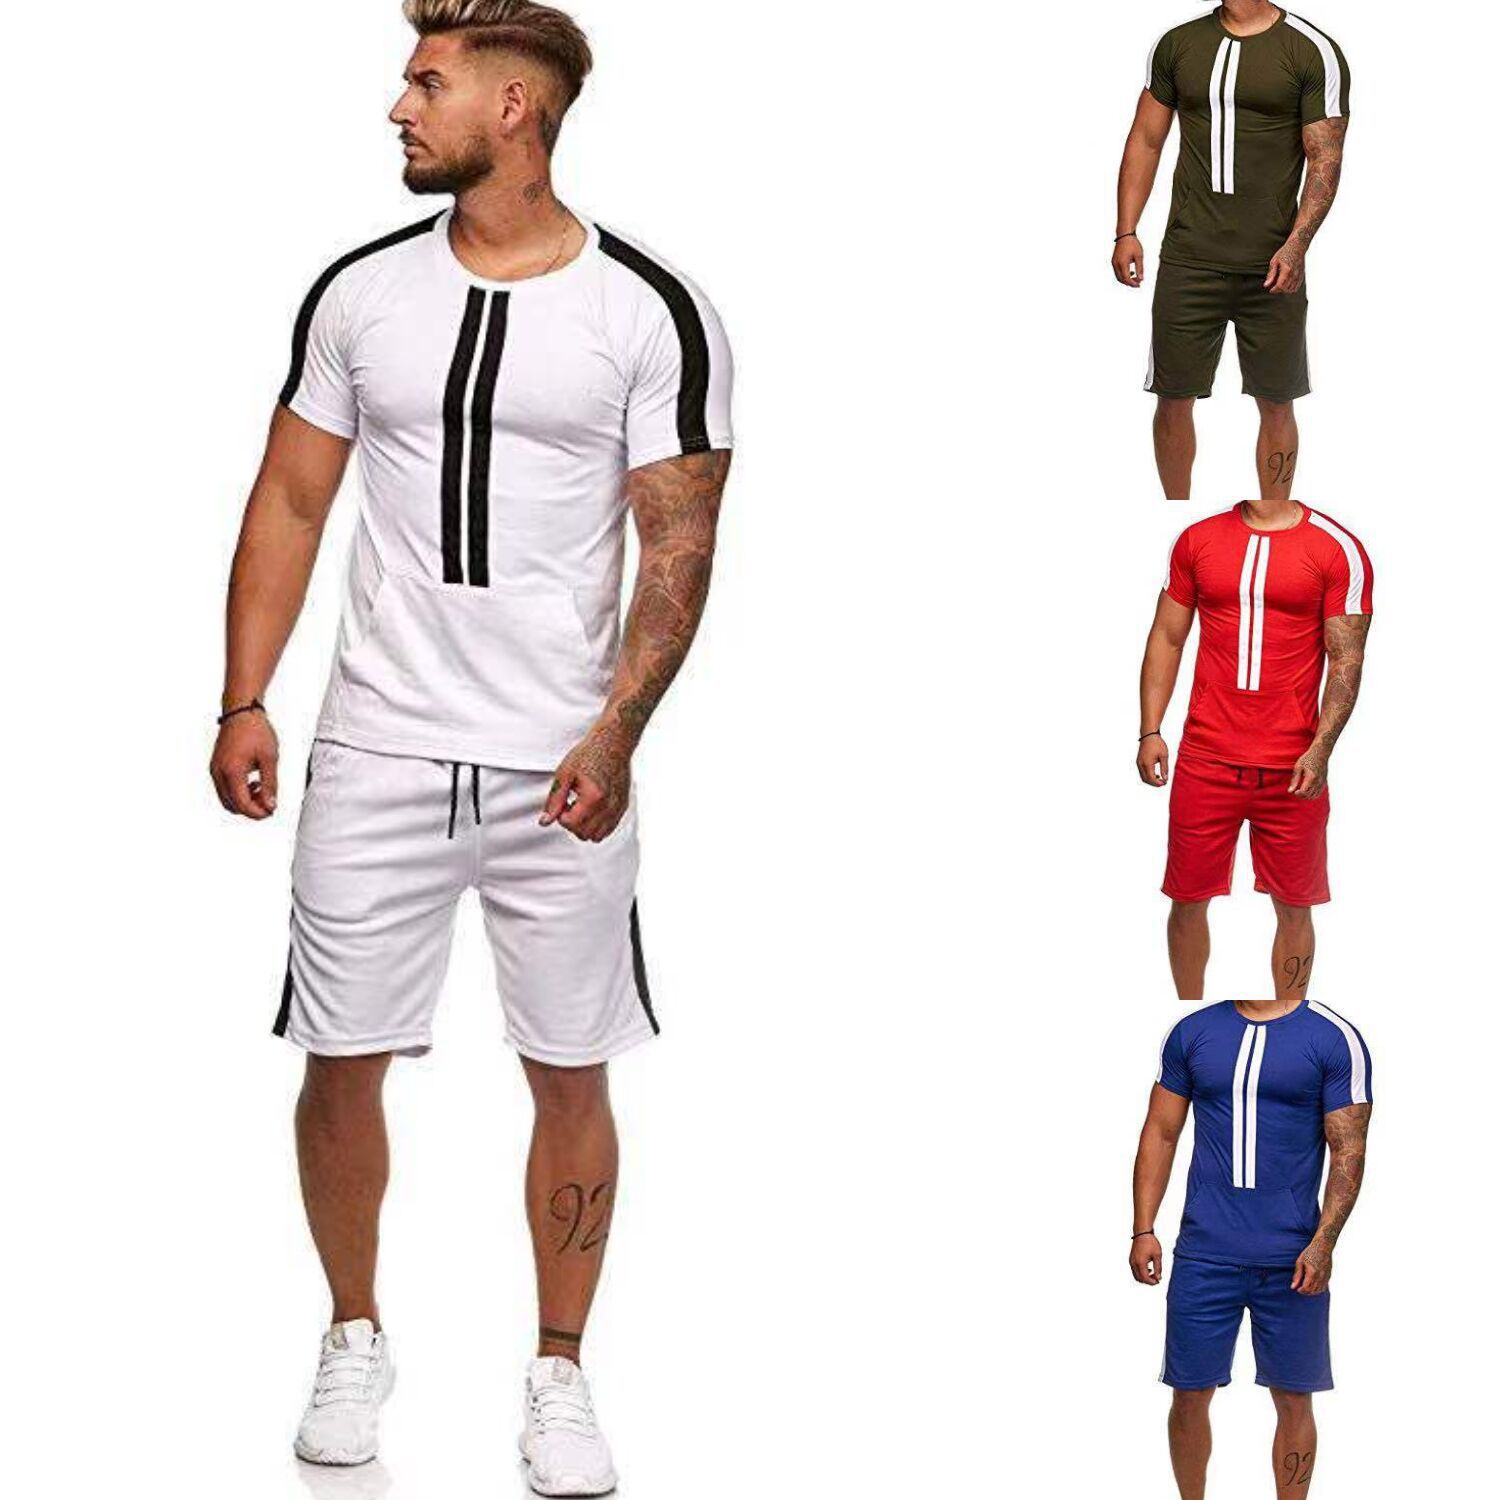 2020 NEW Summer Fashion Men's T Shirt And Shorts Stripe Sets Fit Short Sleeve Casual Sets Outdoor Sports Sets Sliod Color TZ002